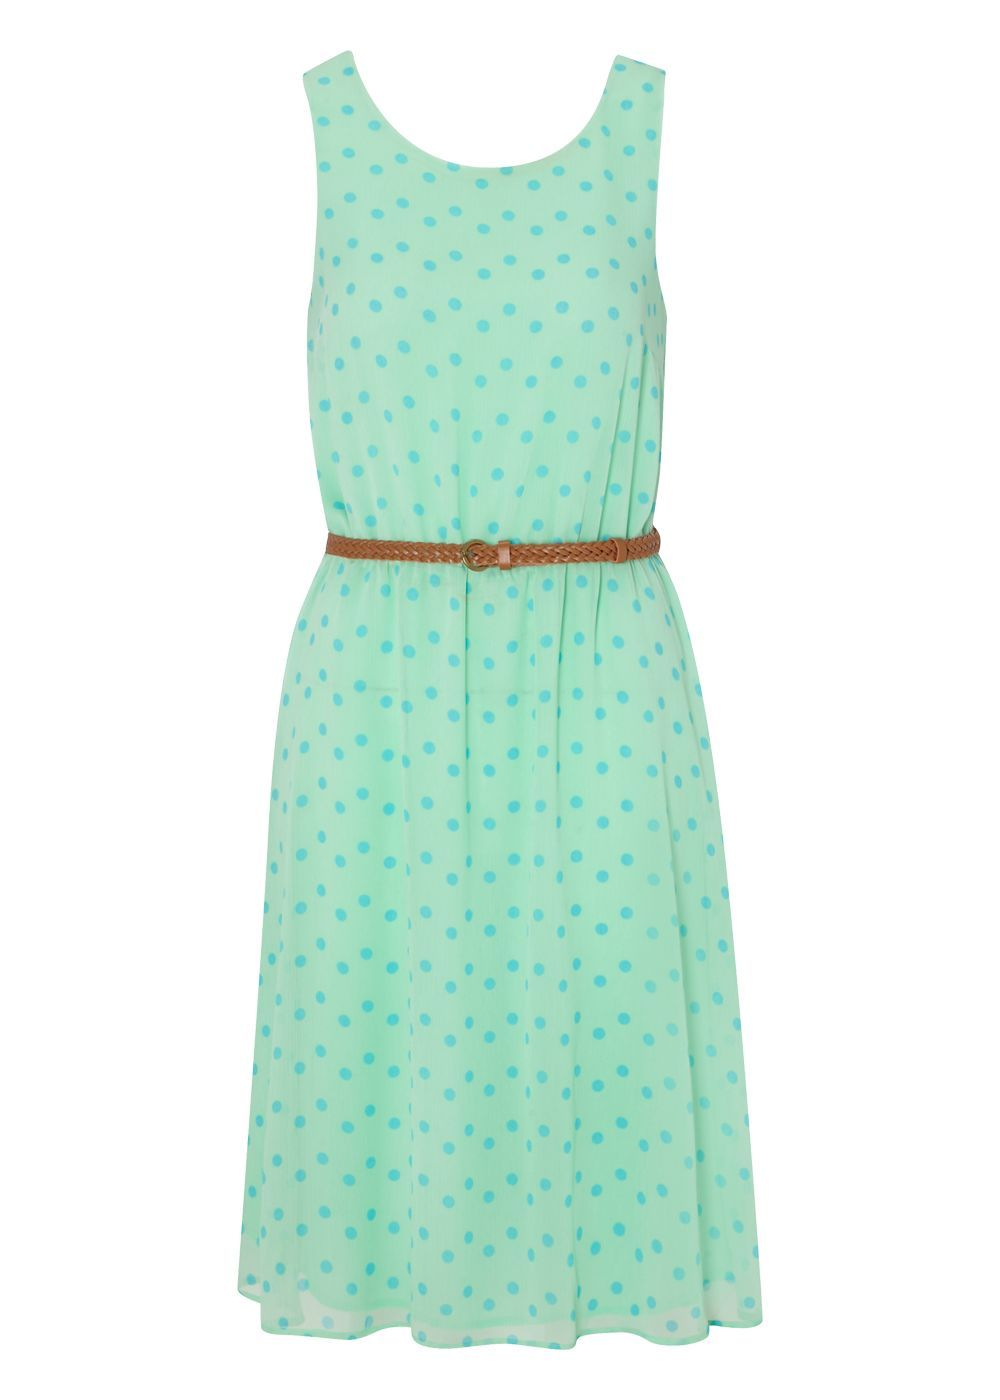 Contemporary Party Dresses At Matalan Images - All Wedding Dresses ...